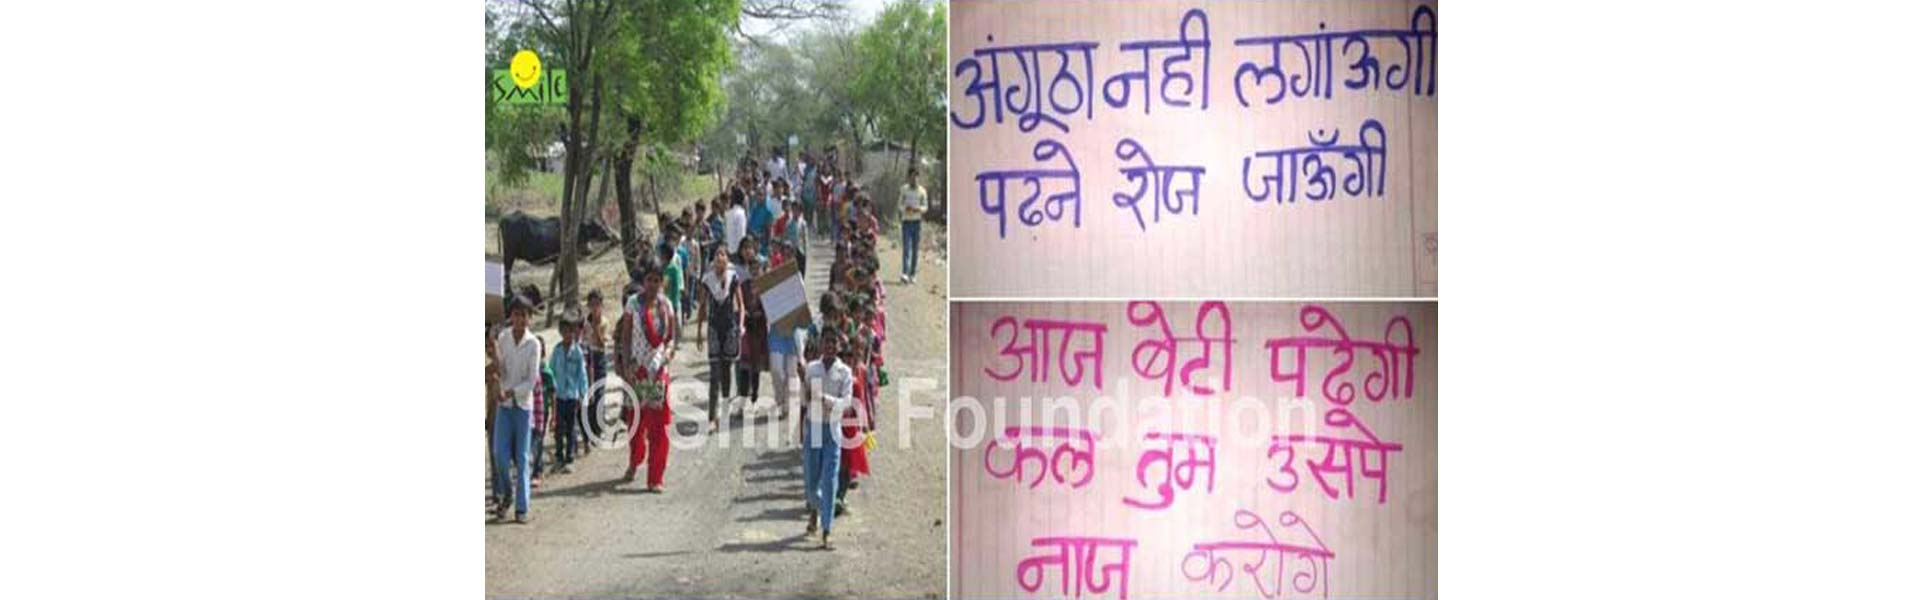 Rally to spread awareness on importance of education taken out at Padarkhedi village